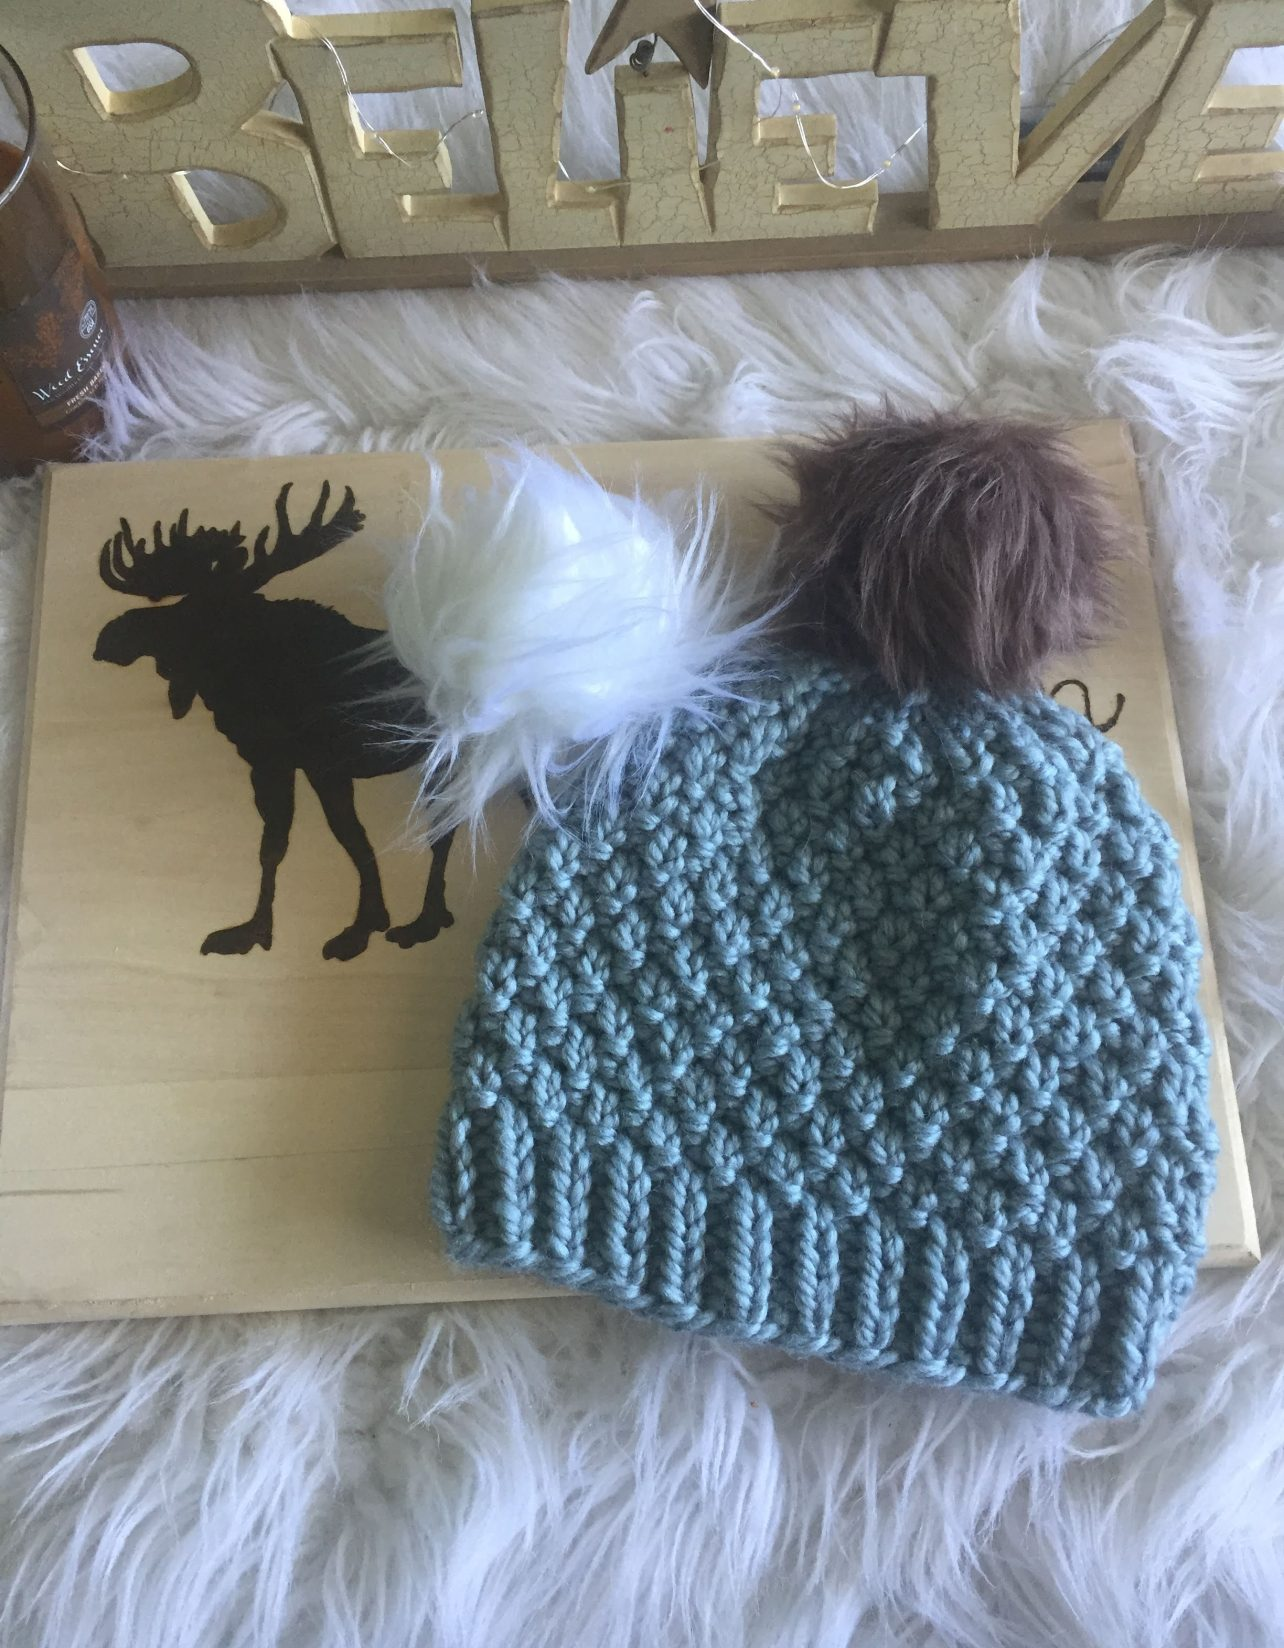 The Seed Stitch Knit Hat - From casual to designer styled hats, these free knit hat patterns on circular needles are sure to be your new favorite projects to work on! #freeknithatpatterns #knithatpatterns #knitpatterns